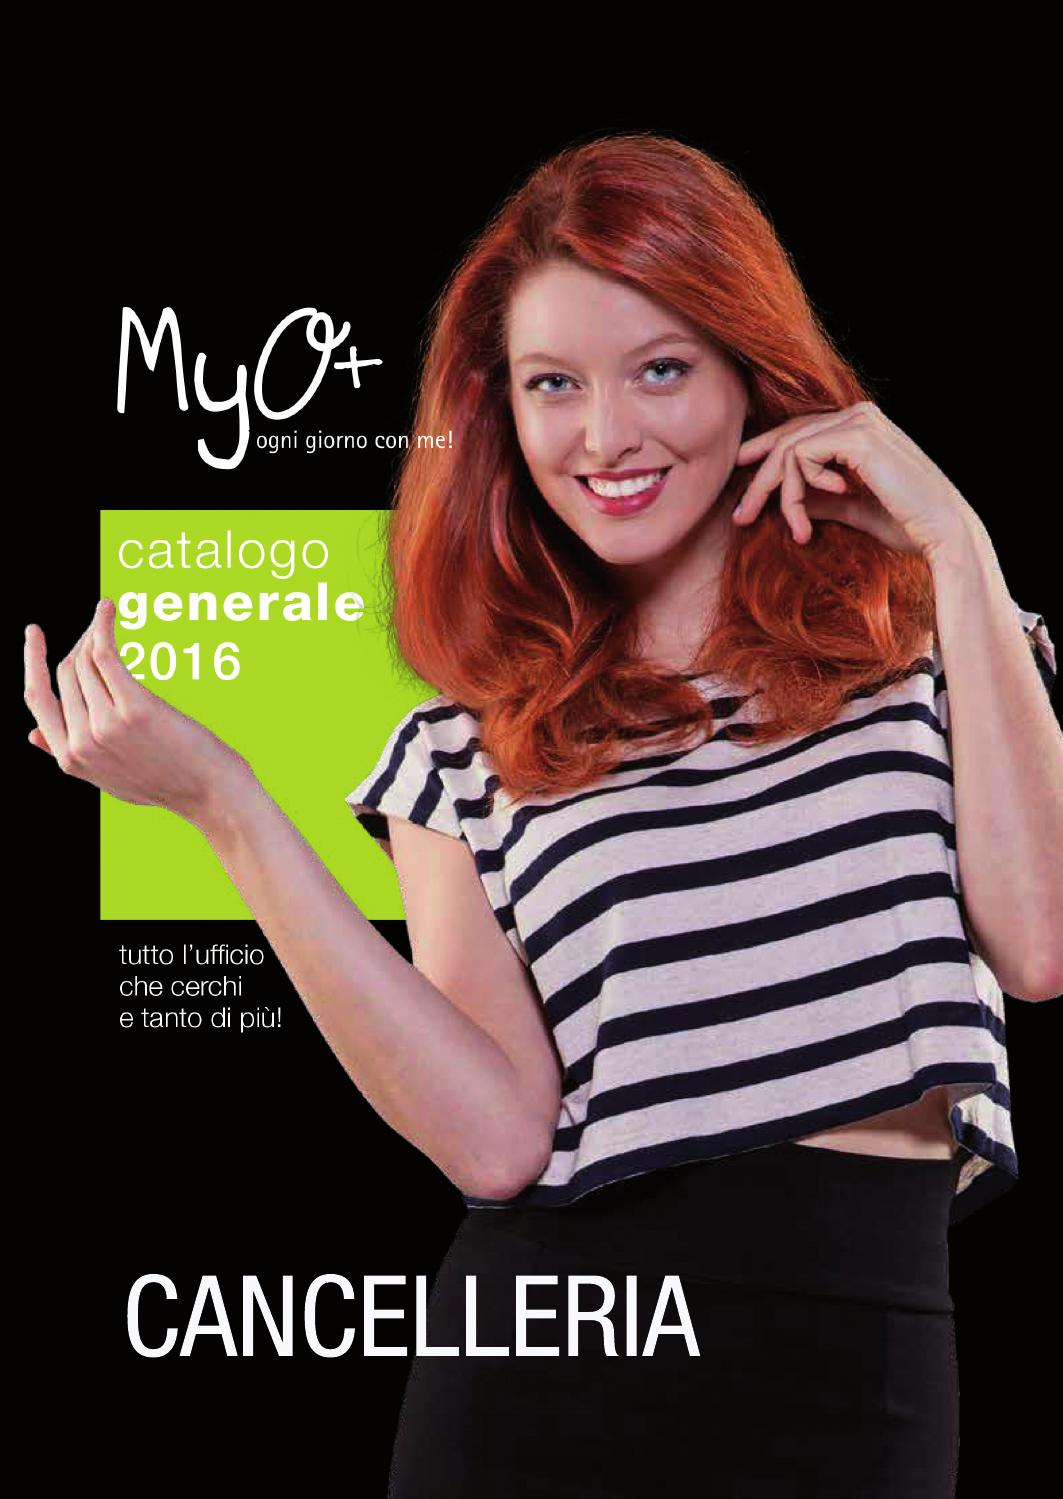 Catalogo Cancelleria Catalogo Myo 2016 Gt Cancelleria By Myo S P A Issuu